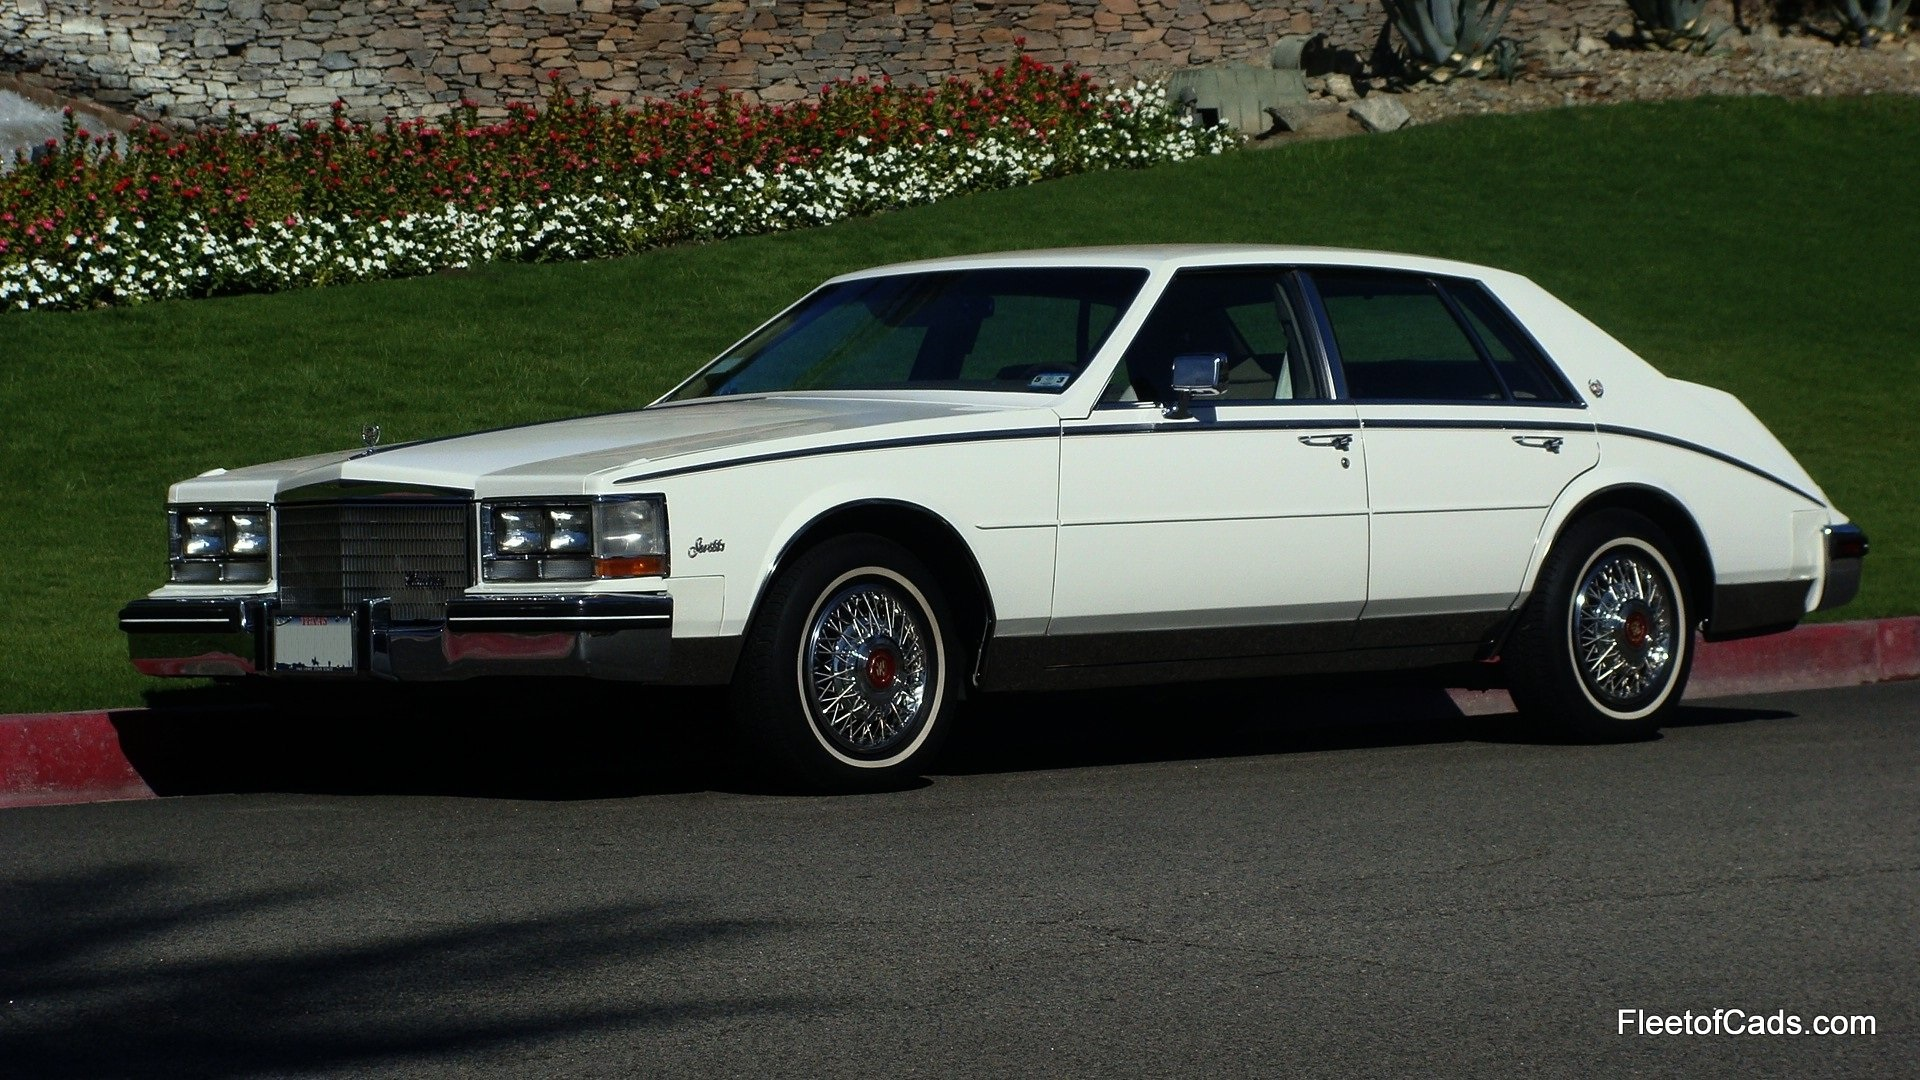 1985 Cadillac Seville 32k miles